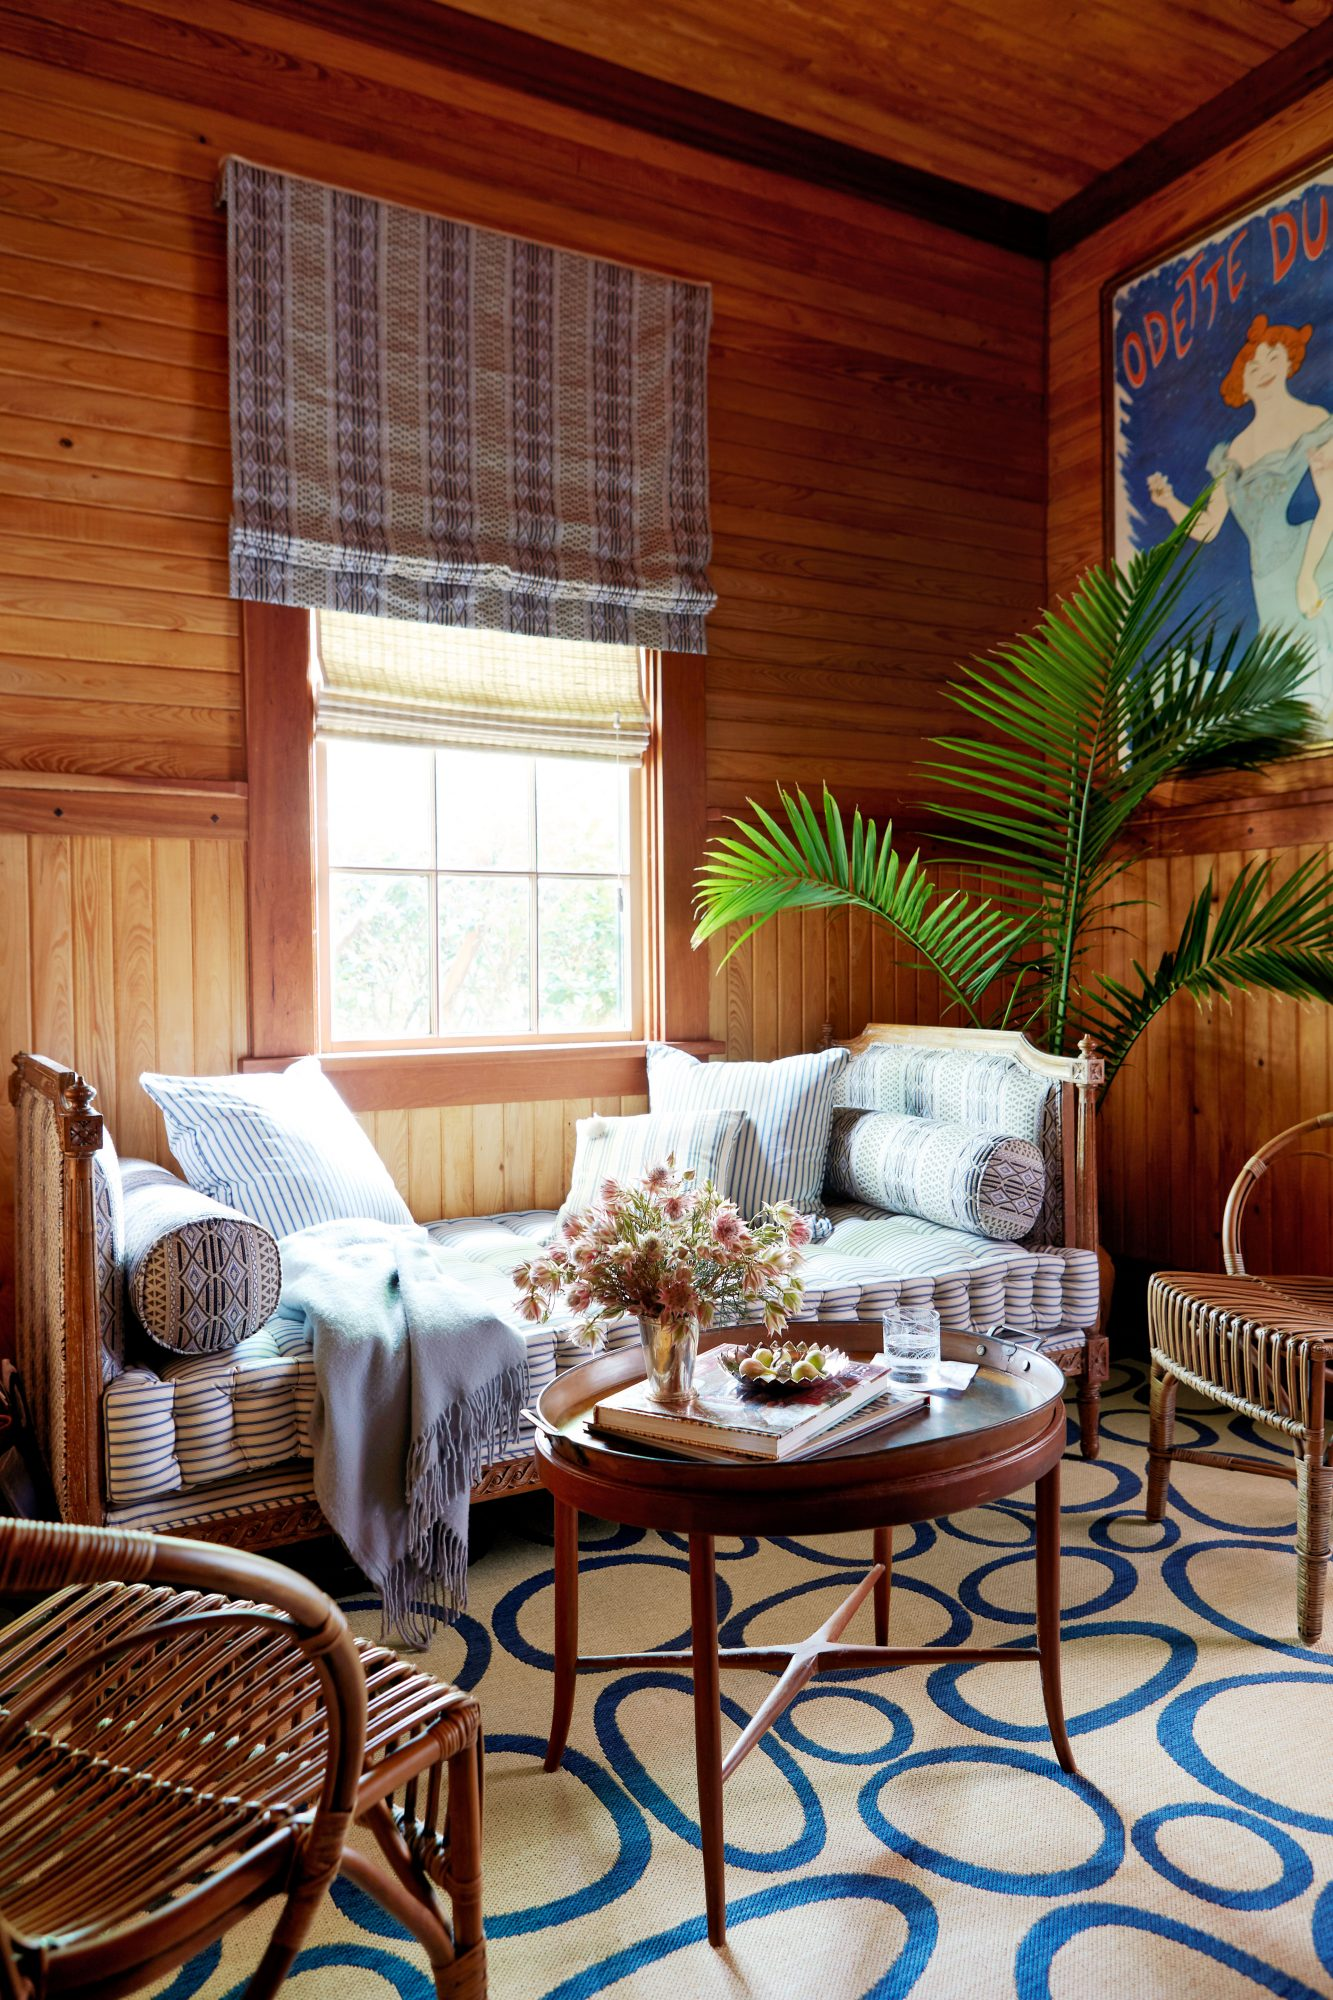 Rattan Daybed in Wood-clad Den